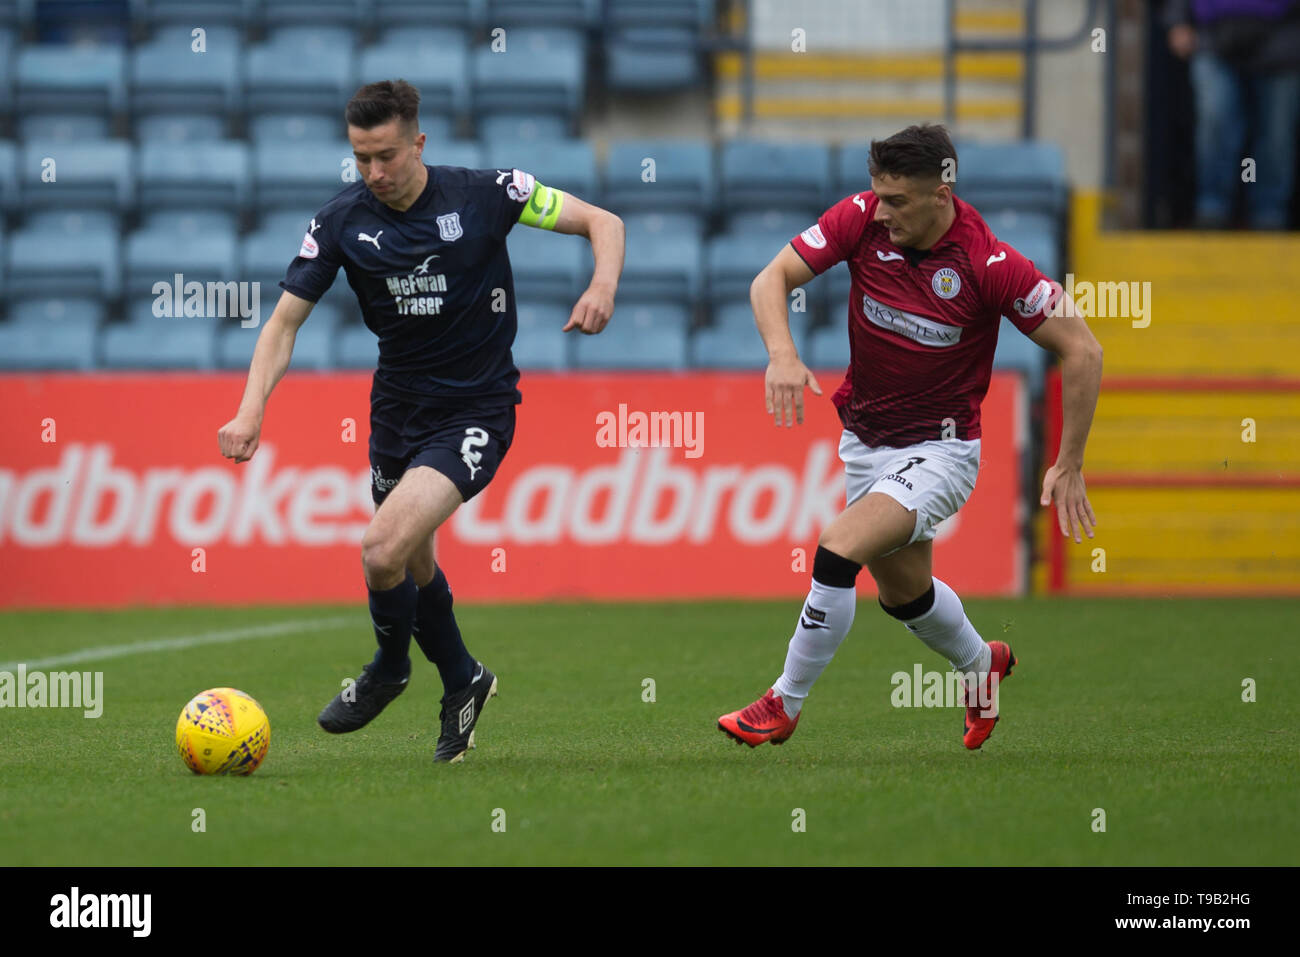 Dens Park, Dundee, UK. 18th May, 2019. Ladbrokes Premiership football, Dundee versus St Mirren; Cammy Kerr of Dundee races away from Kyle Magennis of St Mirren Credit: Action Plus Sports Images/Alamy Live News Credit: Action Plus Sports/Alamy Live News - Stock Image